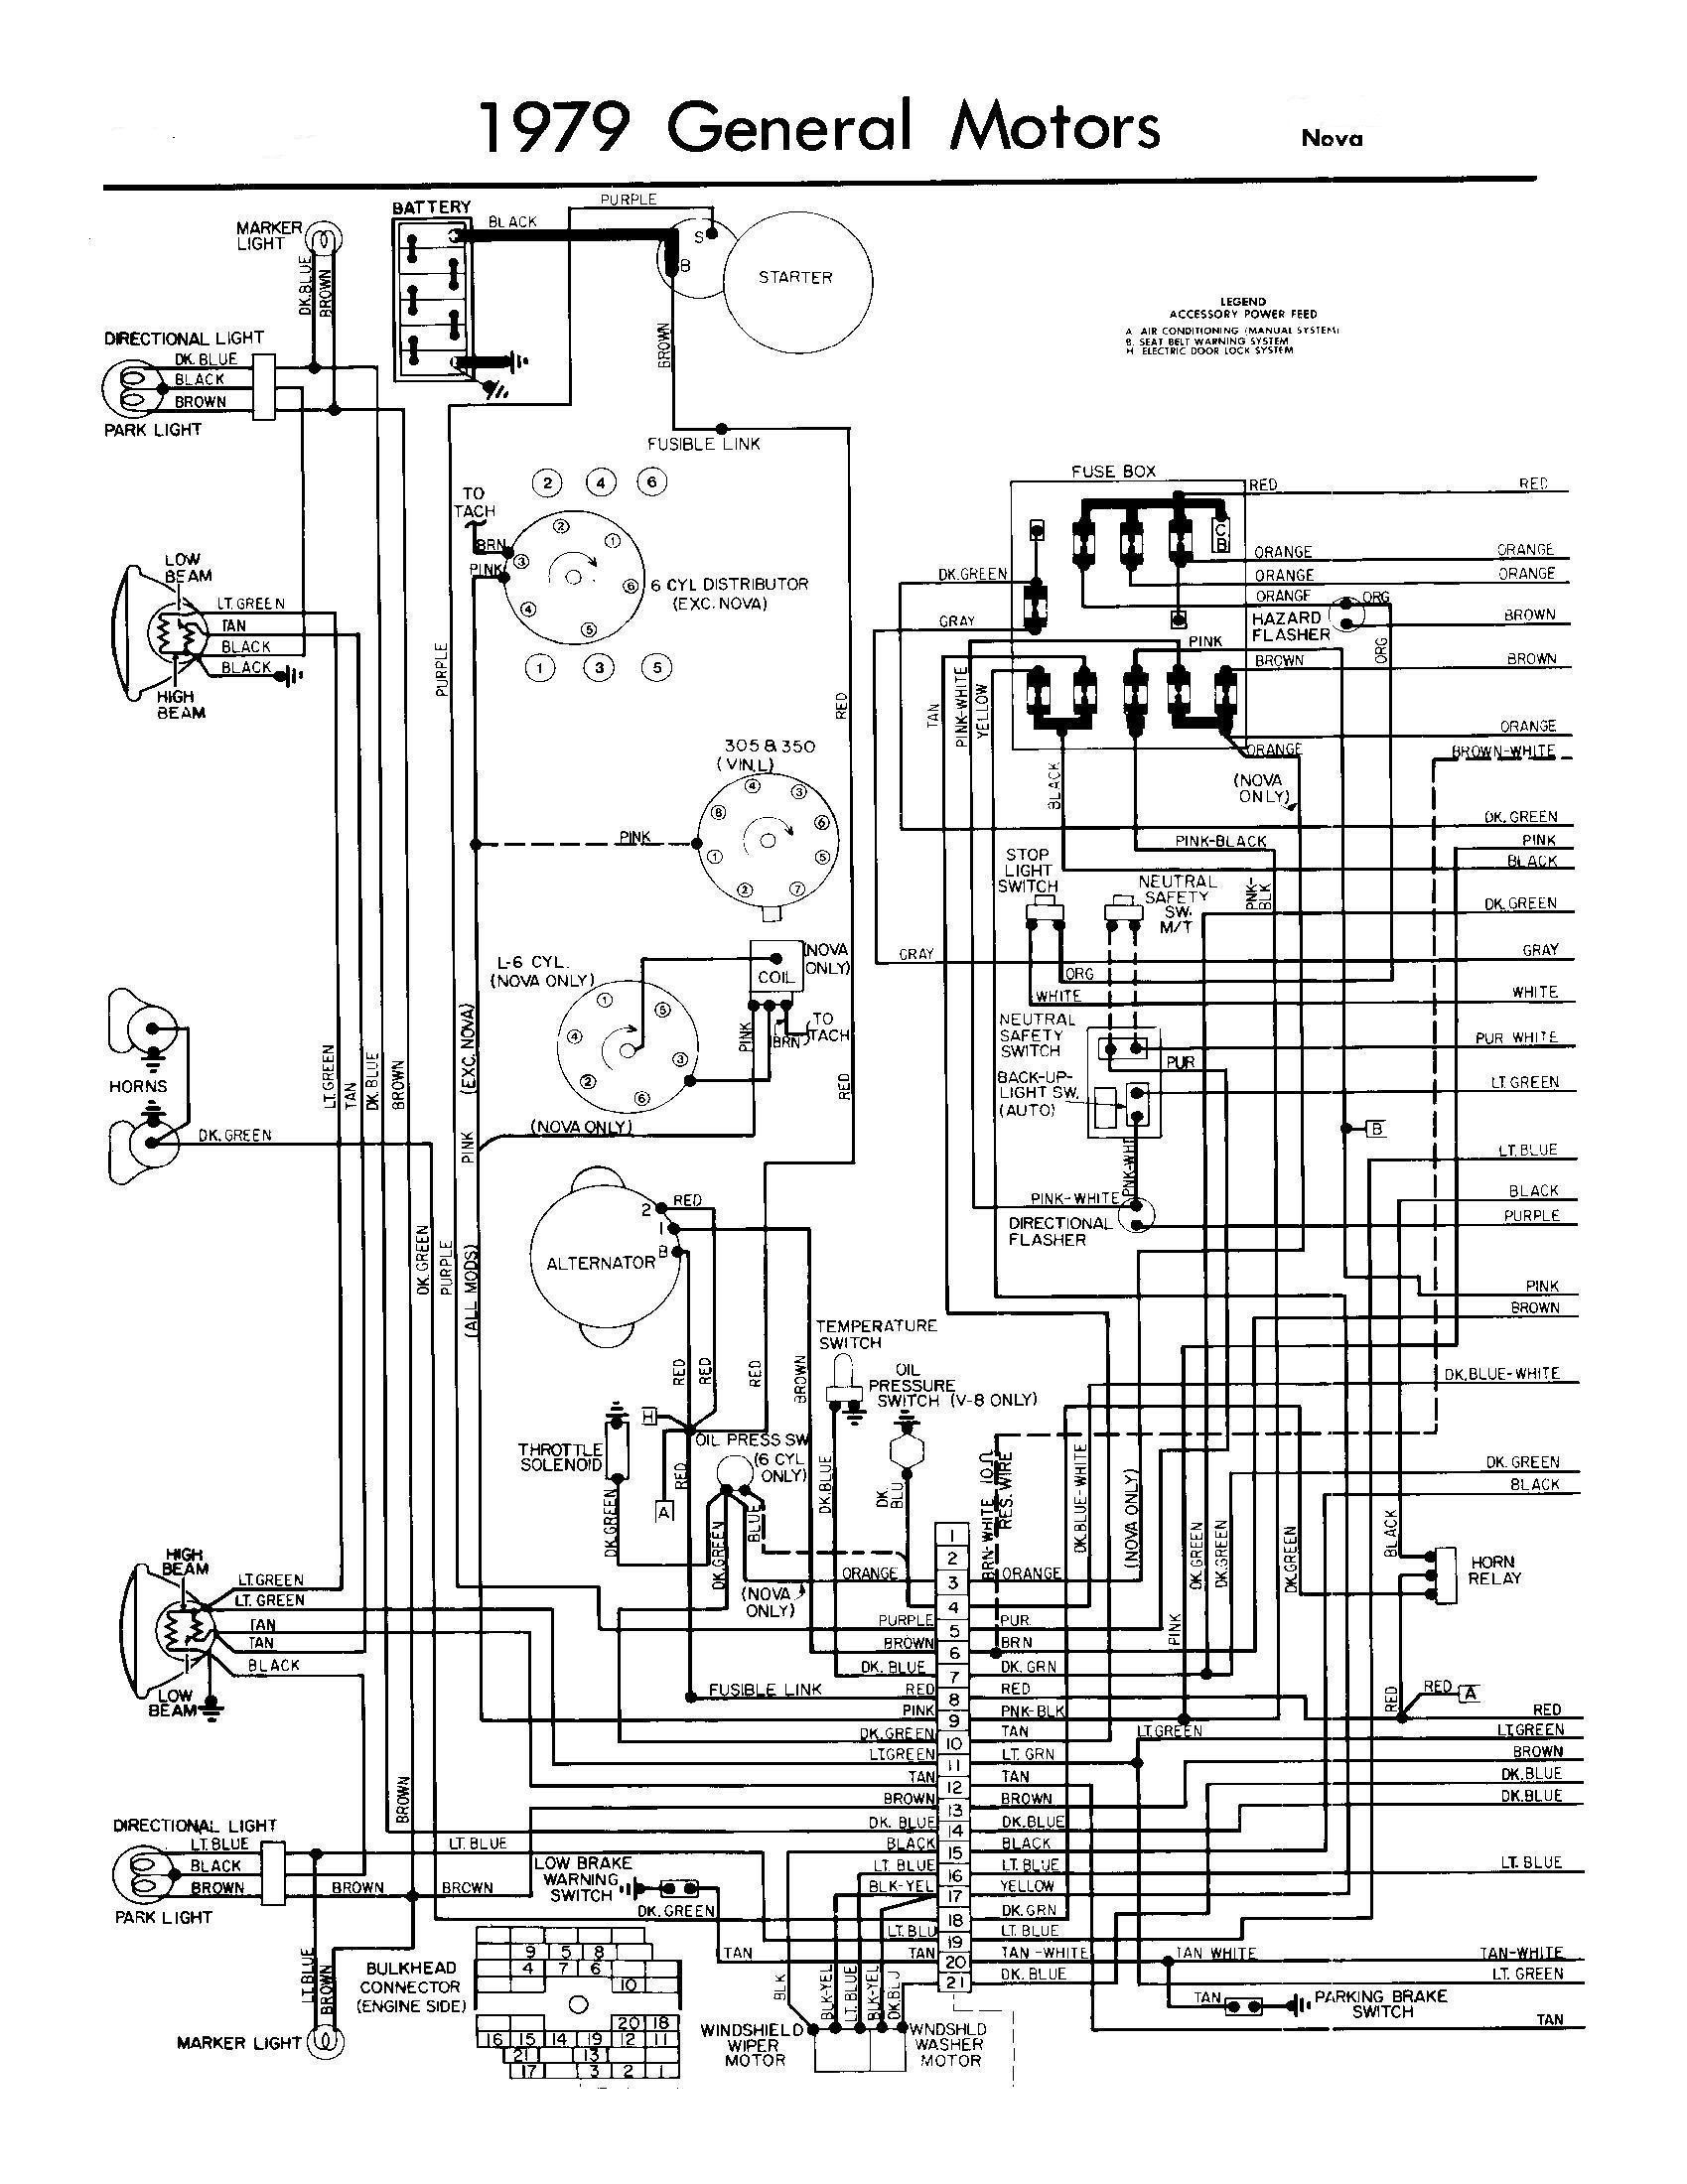 1969 cb175 wiring diagram fuse box \u0026 wiring diagramsprinkler system wiring diagram free download wiring diagrams fuse1969 mini wiring diagram wiring diagram